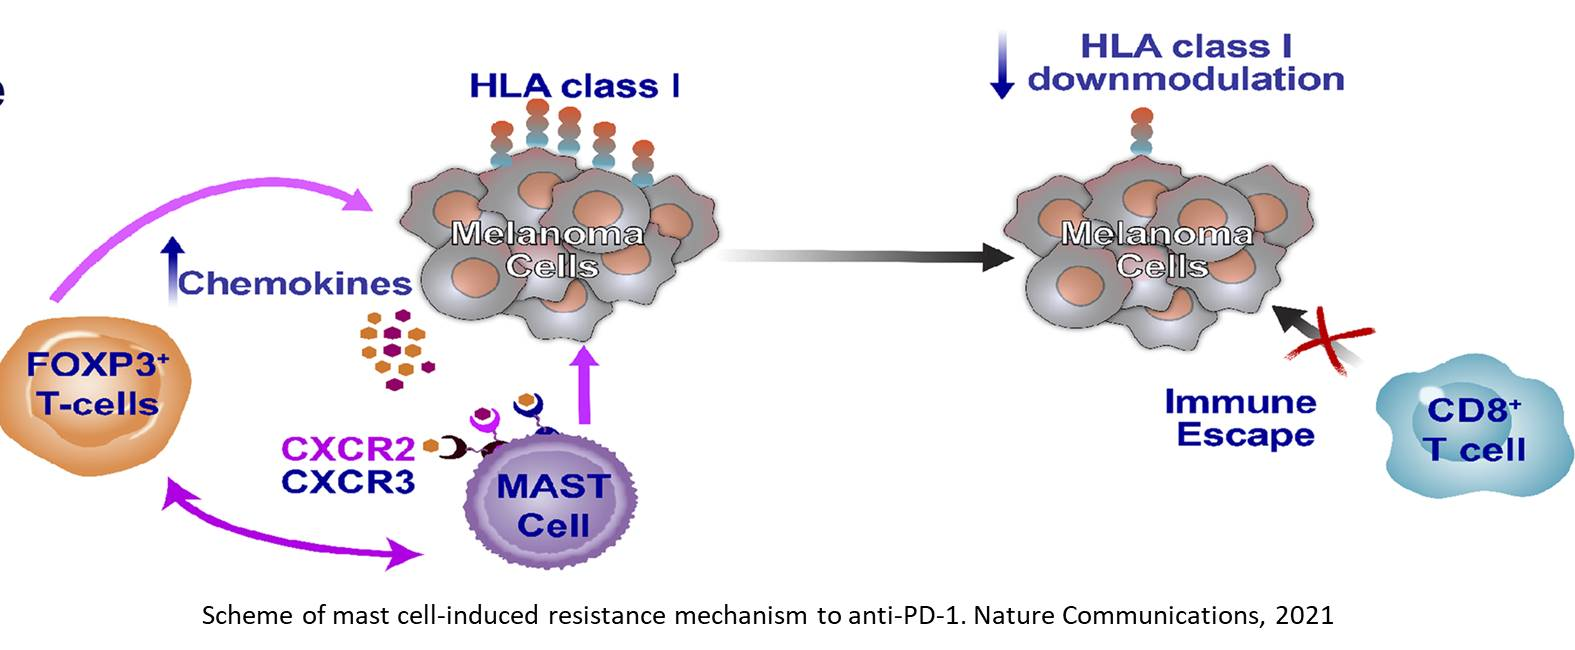 Tumor-infiltrating mast cells are connected to immune checkpoint inhibitor resistance